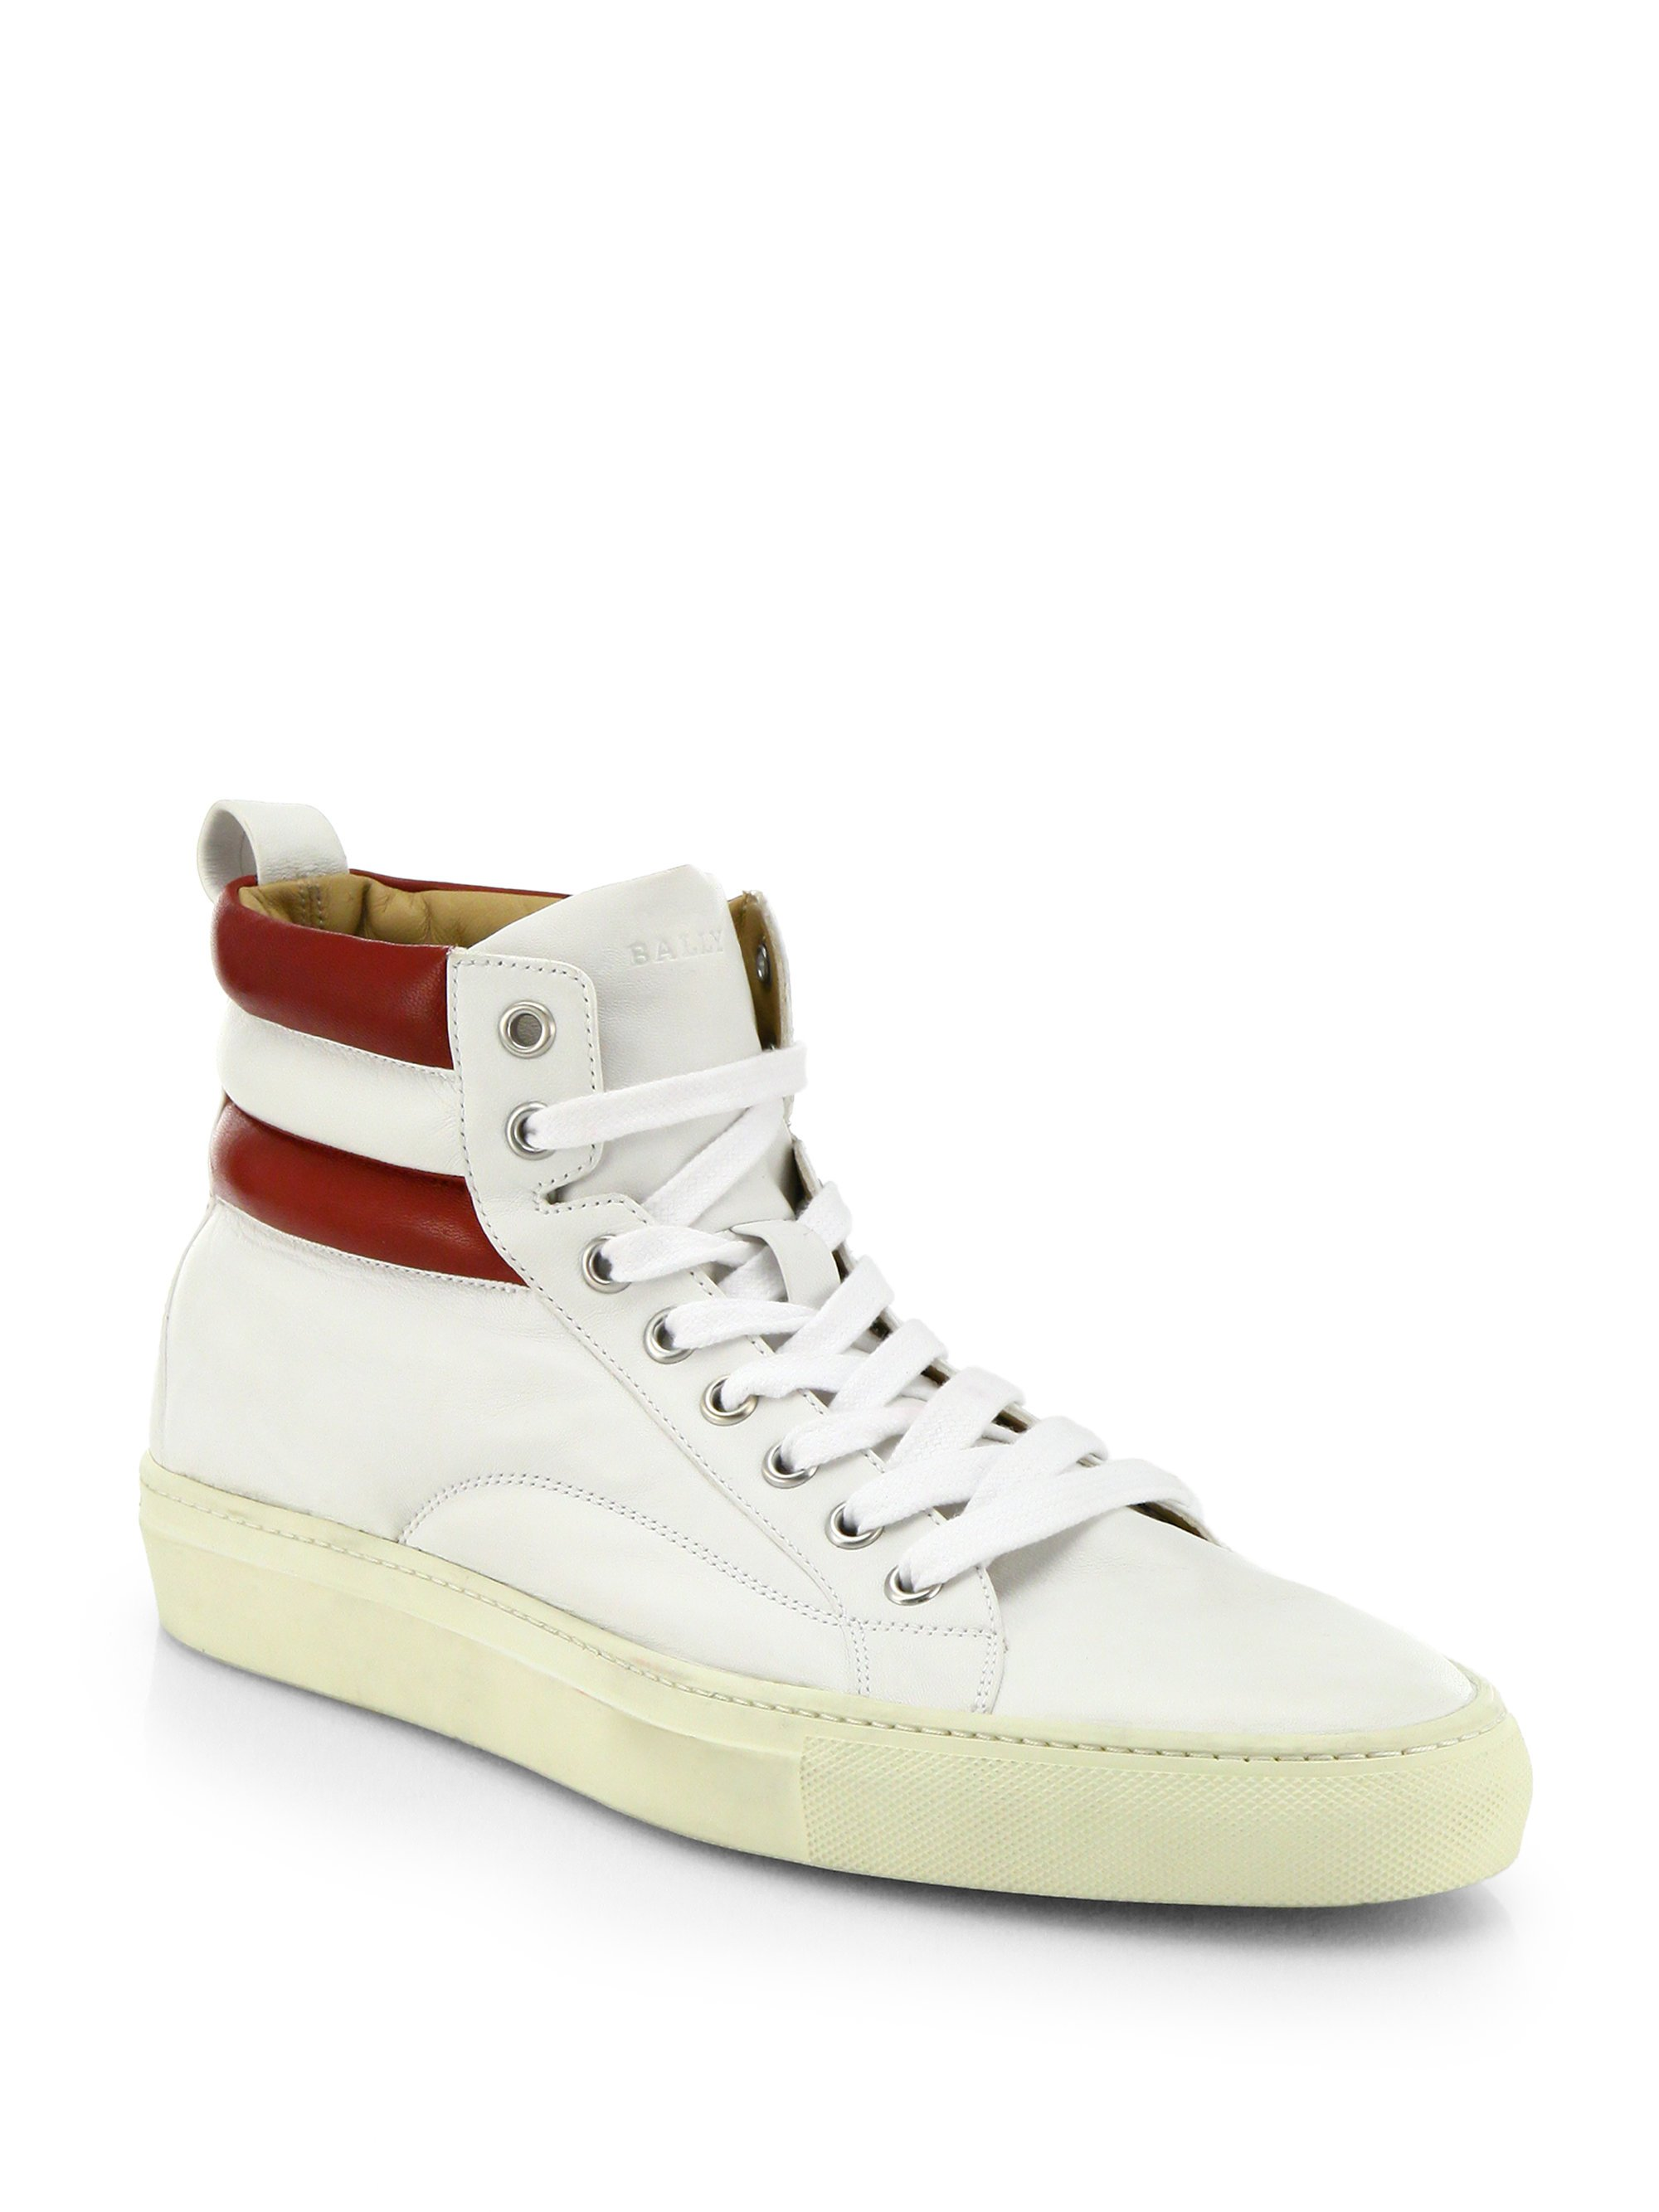 Bally Leather High-Top Sneakers In White For Men